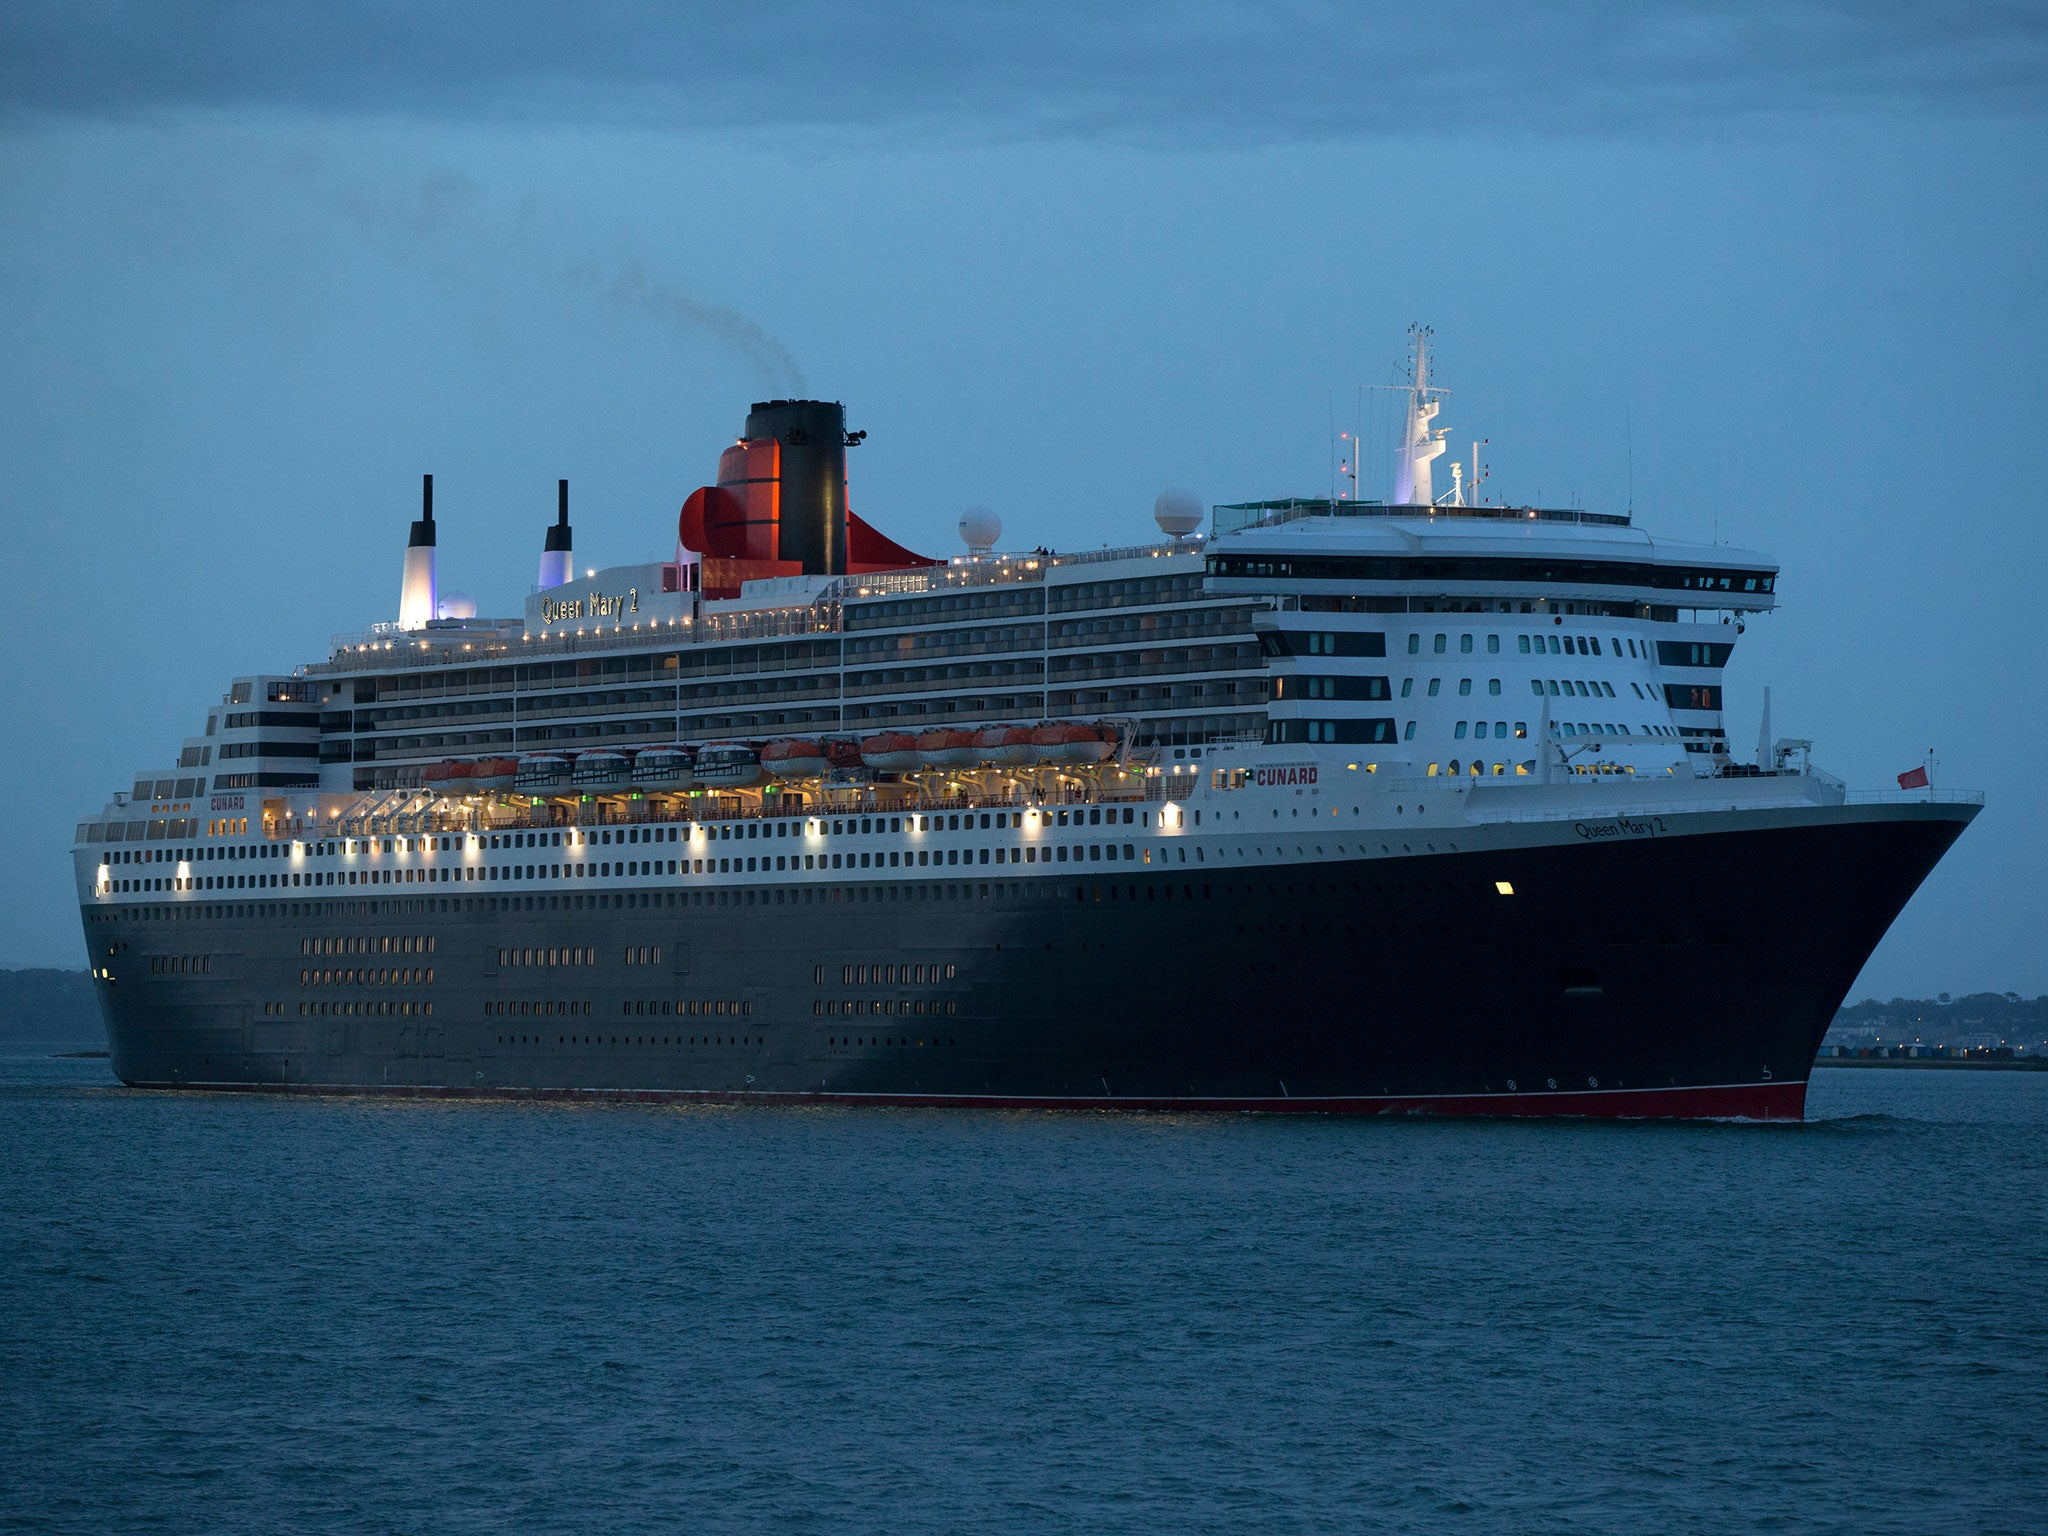 Queen mary 2 crew reportedly banned from drinking alcohol for Queen mary 2 interieur